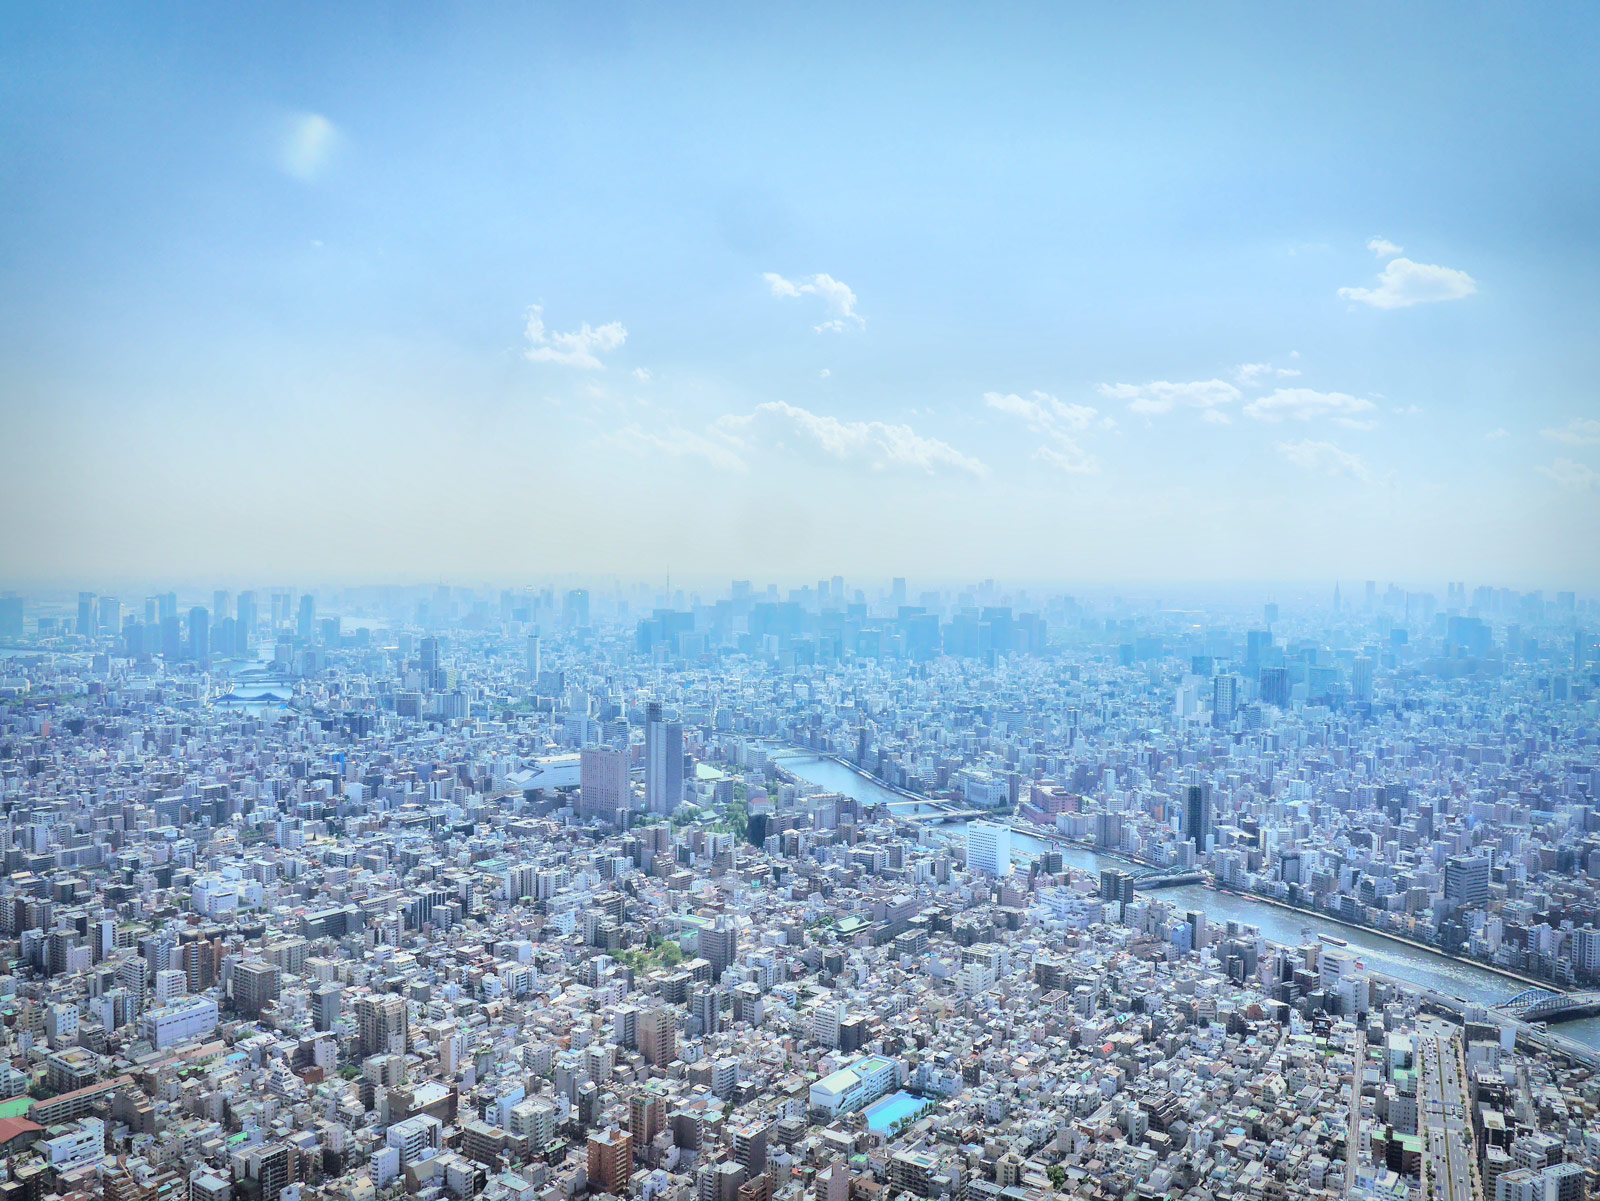 Tokyo Skytree: Enjoy a 360 Degree Panoramic View of the City - Tokyo, Japan